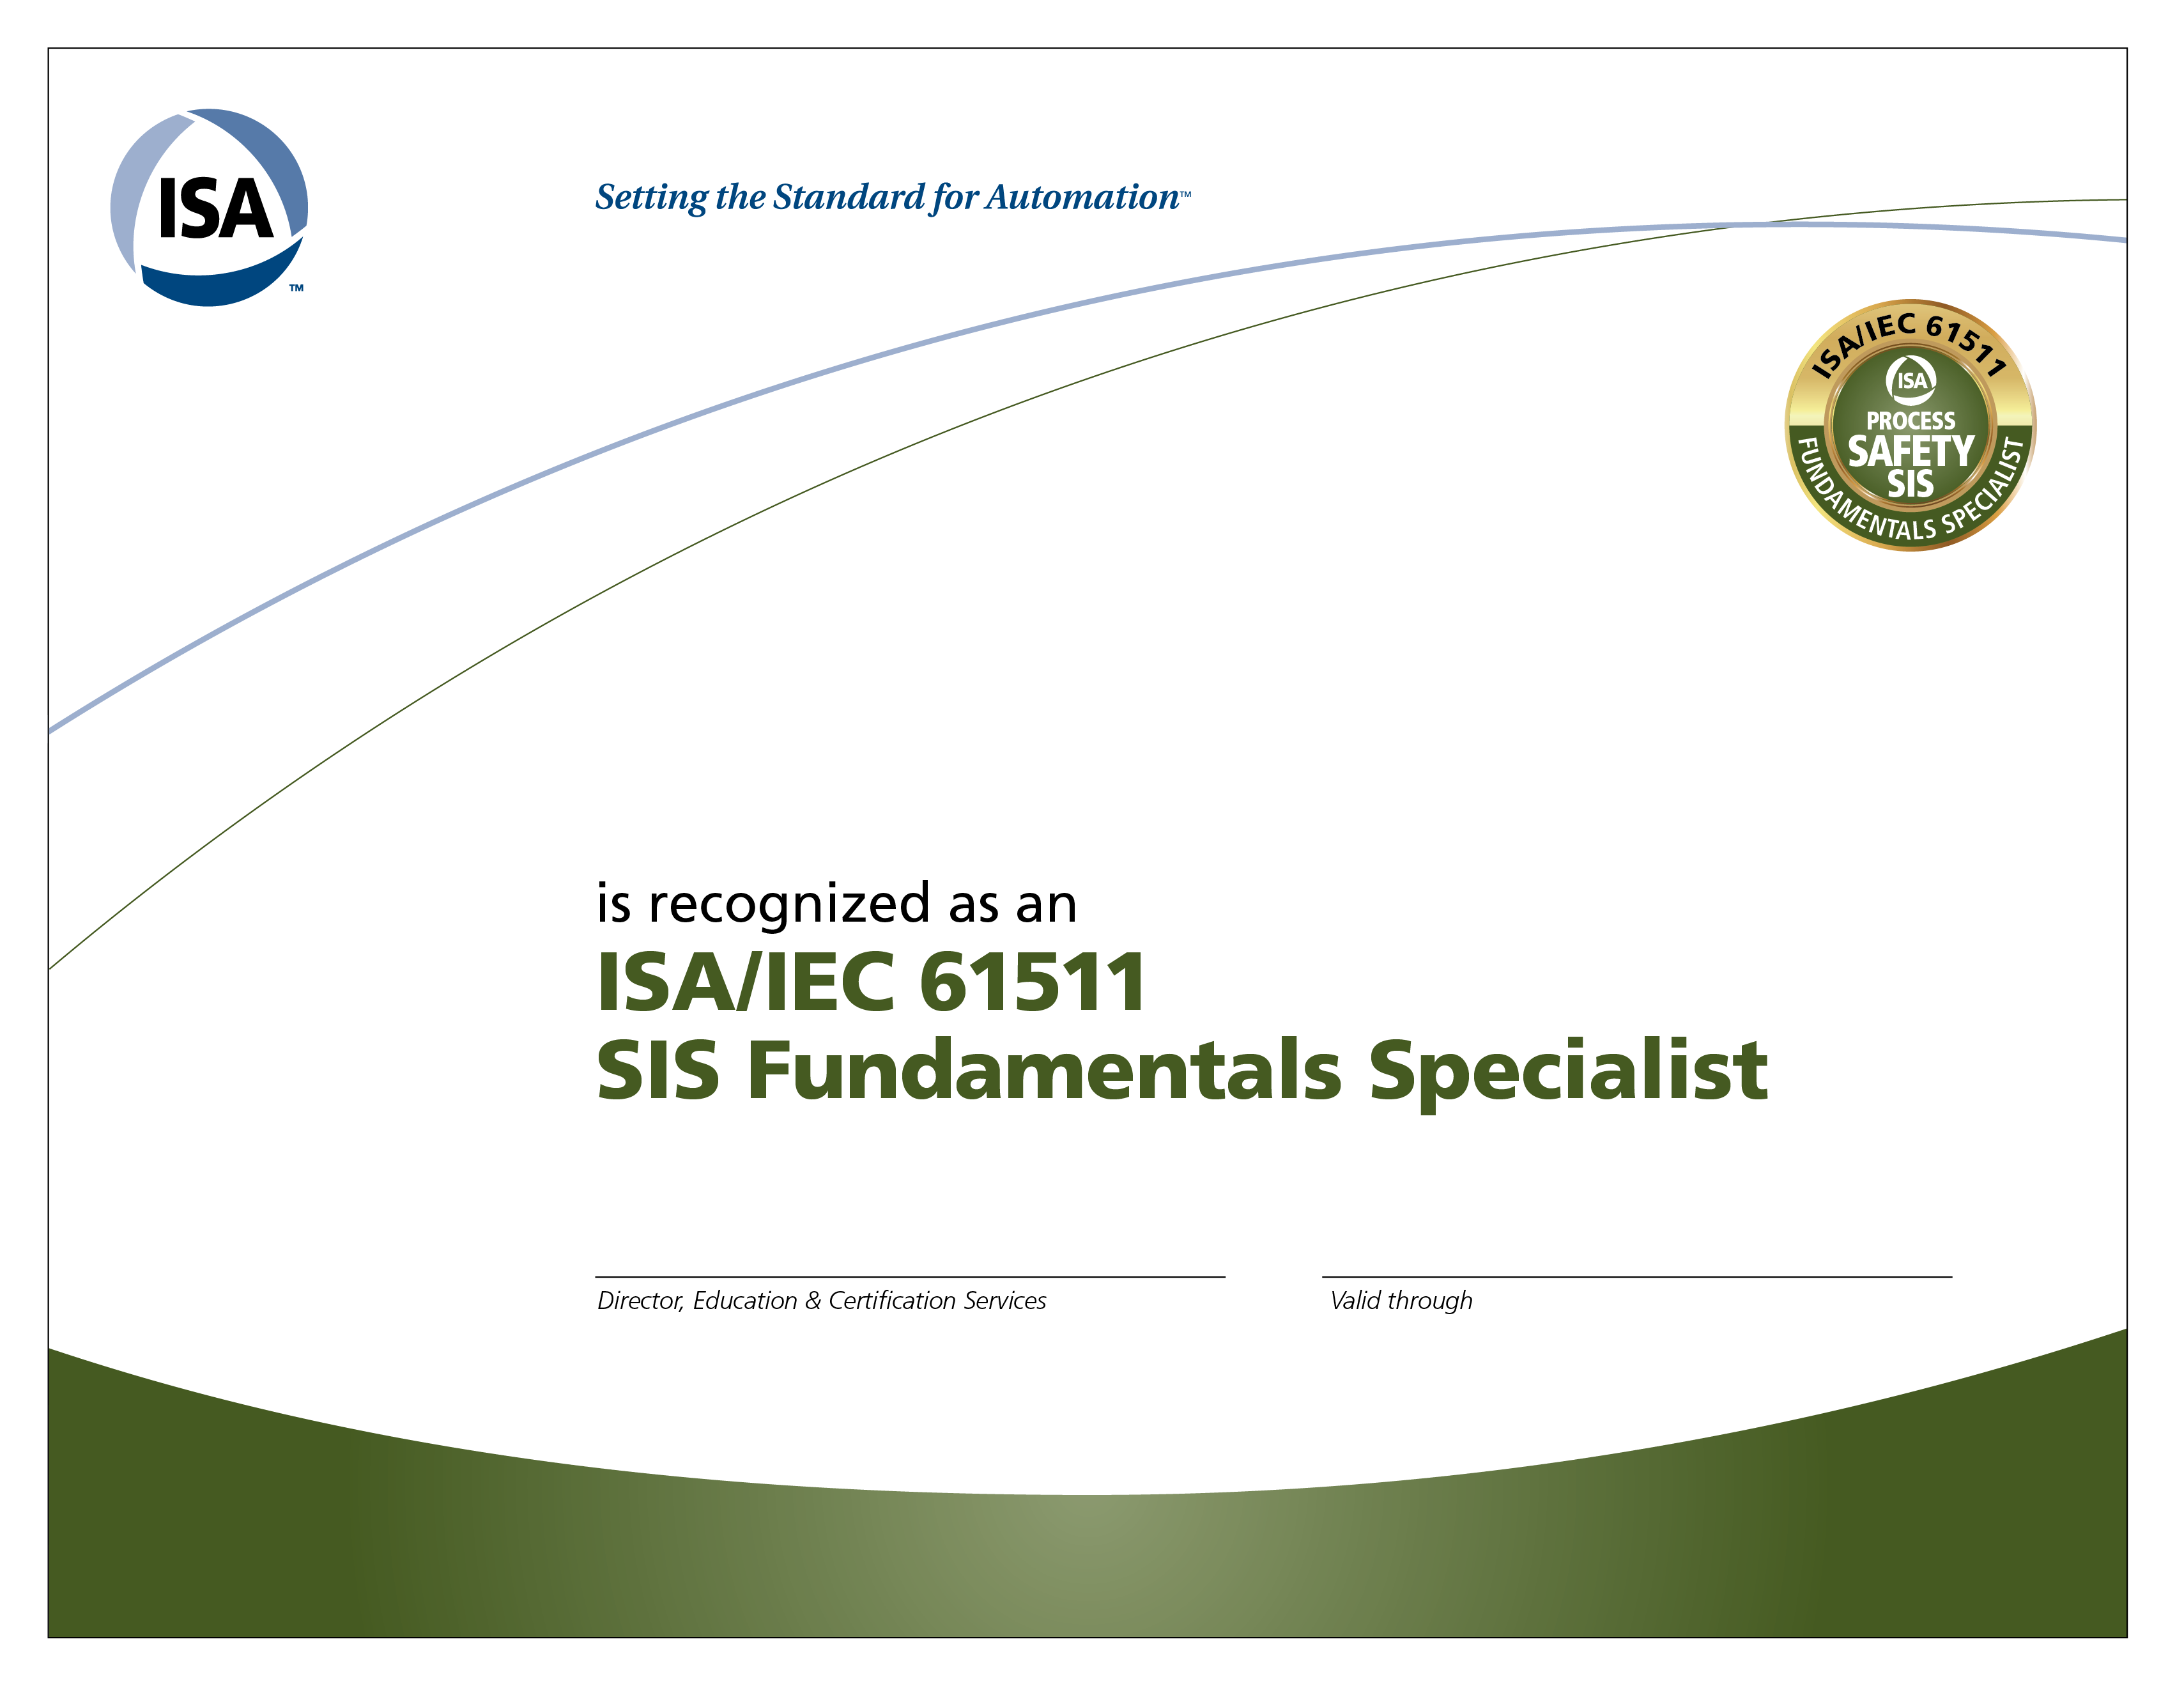 isa certificate sis iec specialist fundamentals blockchain accredible